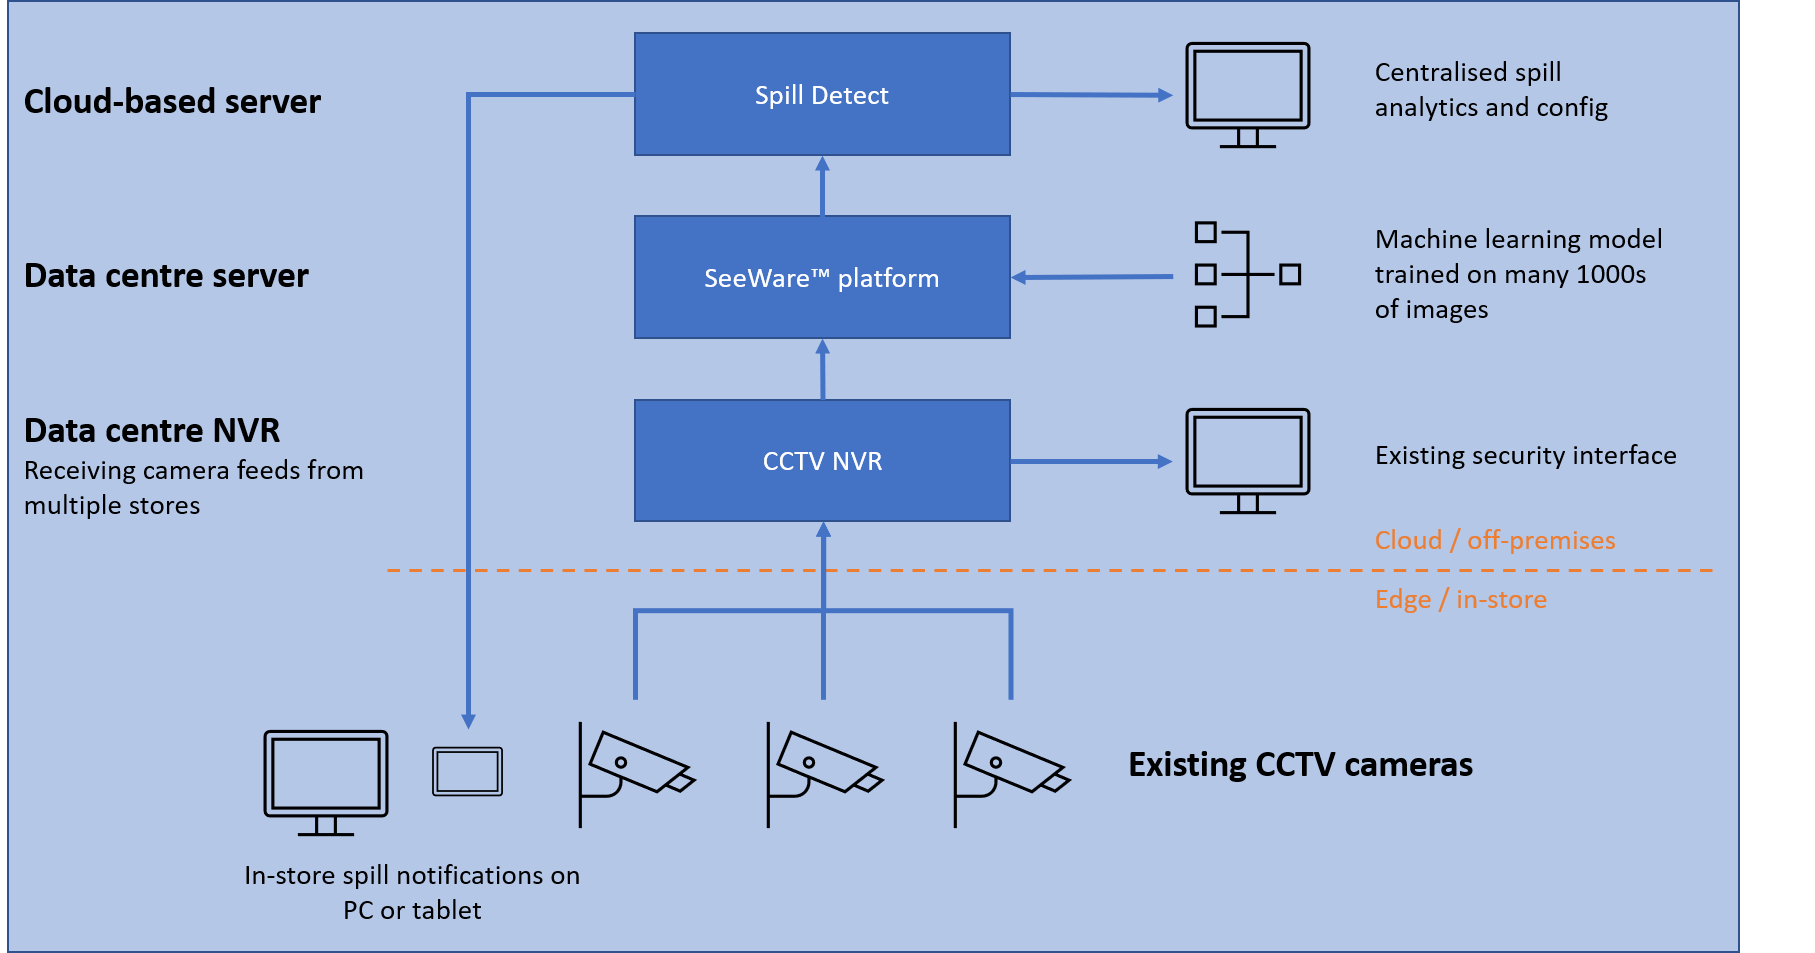 Spill Detection Cloud-based Deployment Diagram. Spill Detect running on centralised servers, feeding metadata into the main application